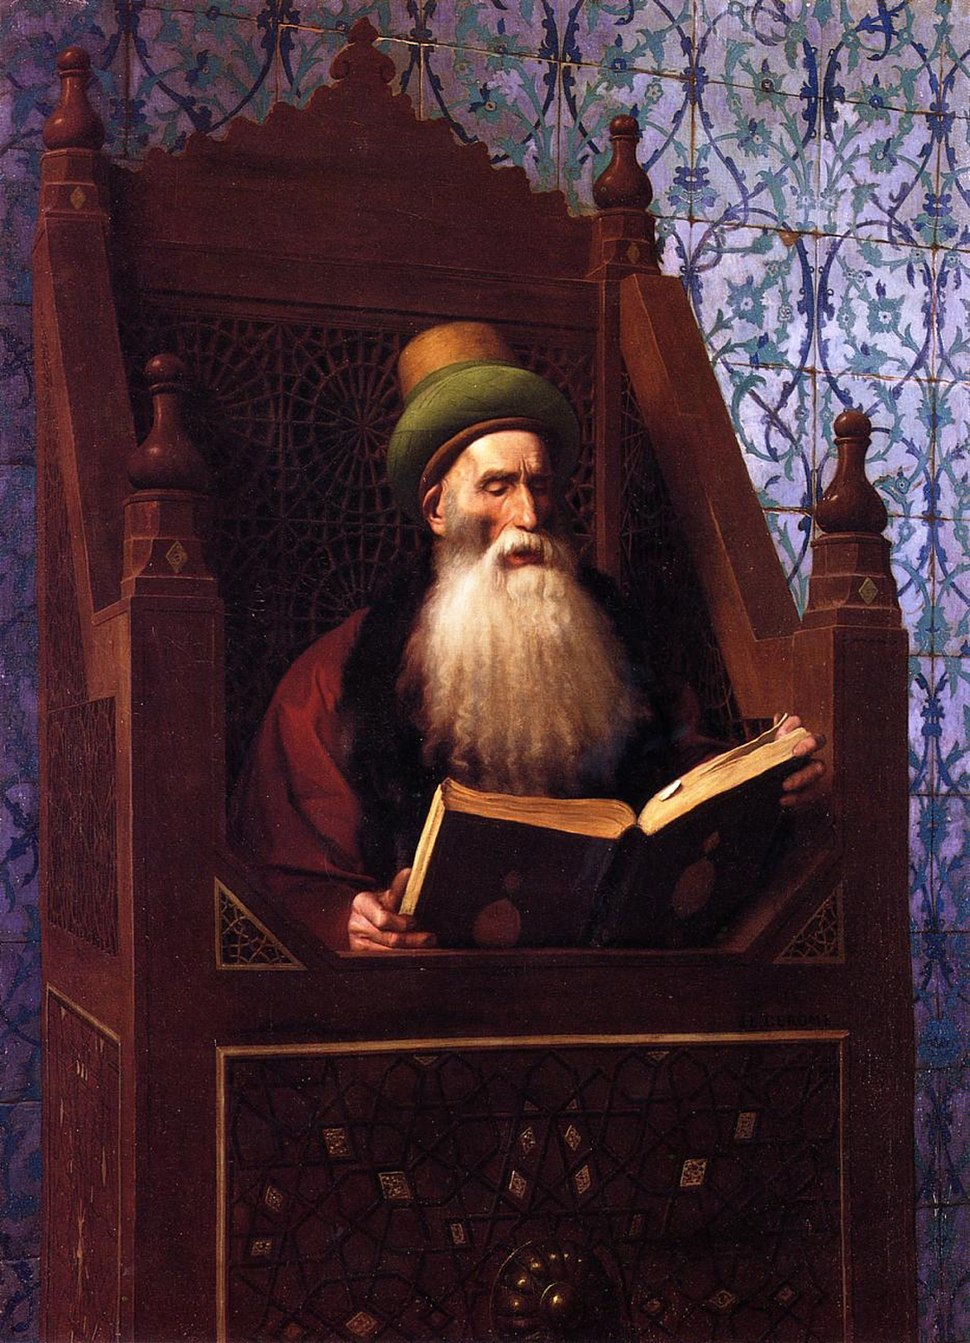 G%C3%A9r%C3%B4me - Mufti Reading in His Prayer Stool